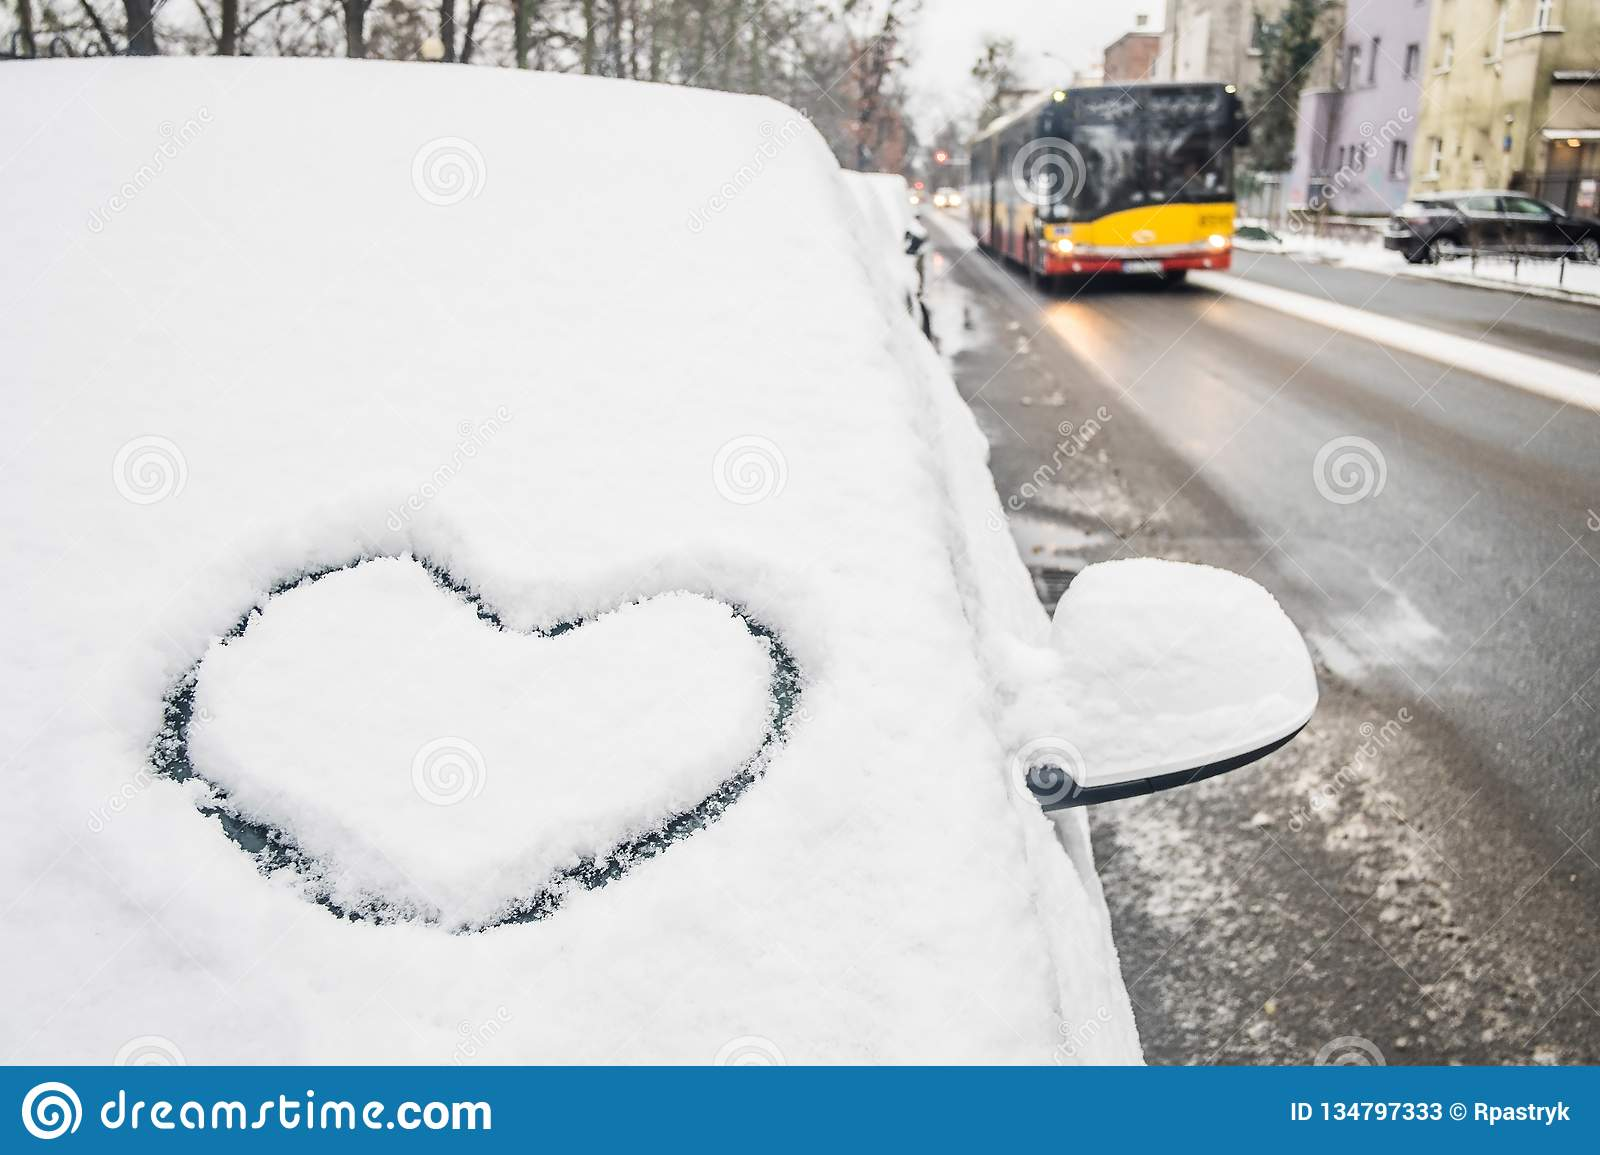 Heart icon drawing in snow on car front window, bus in the background